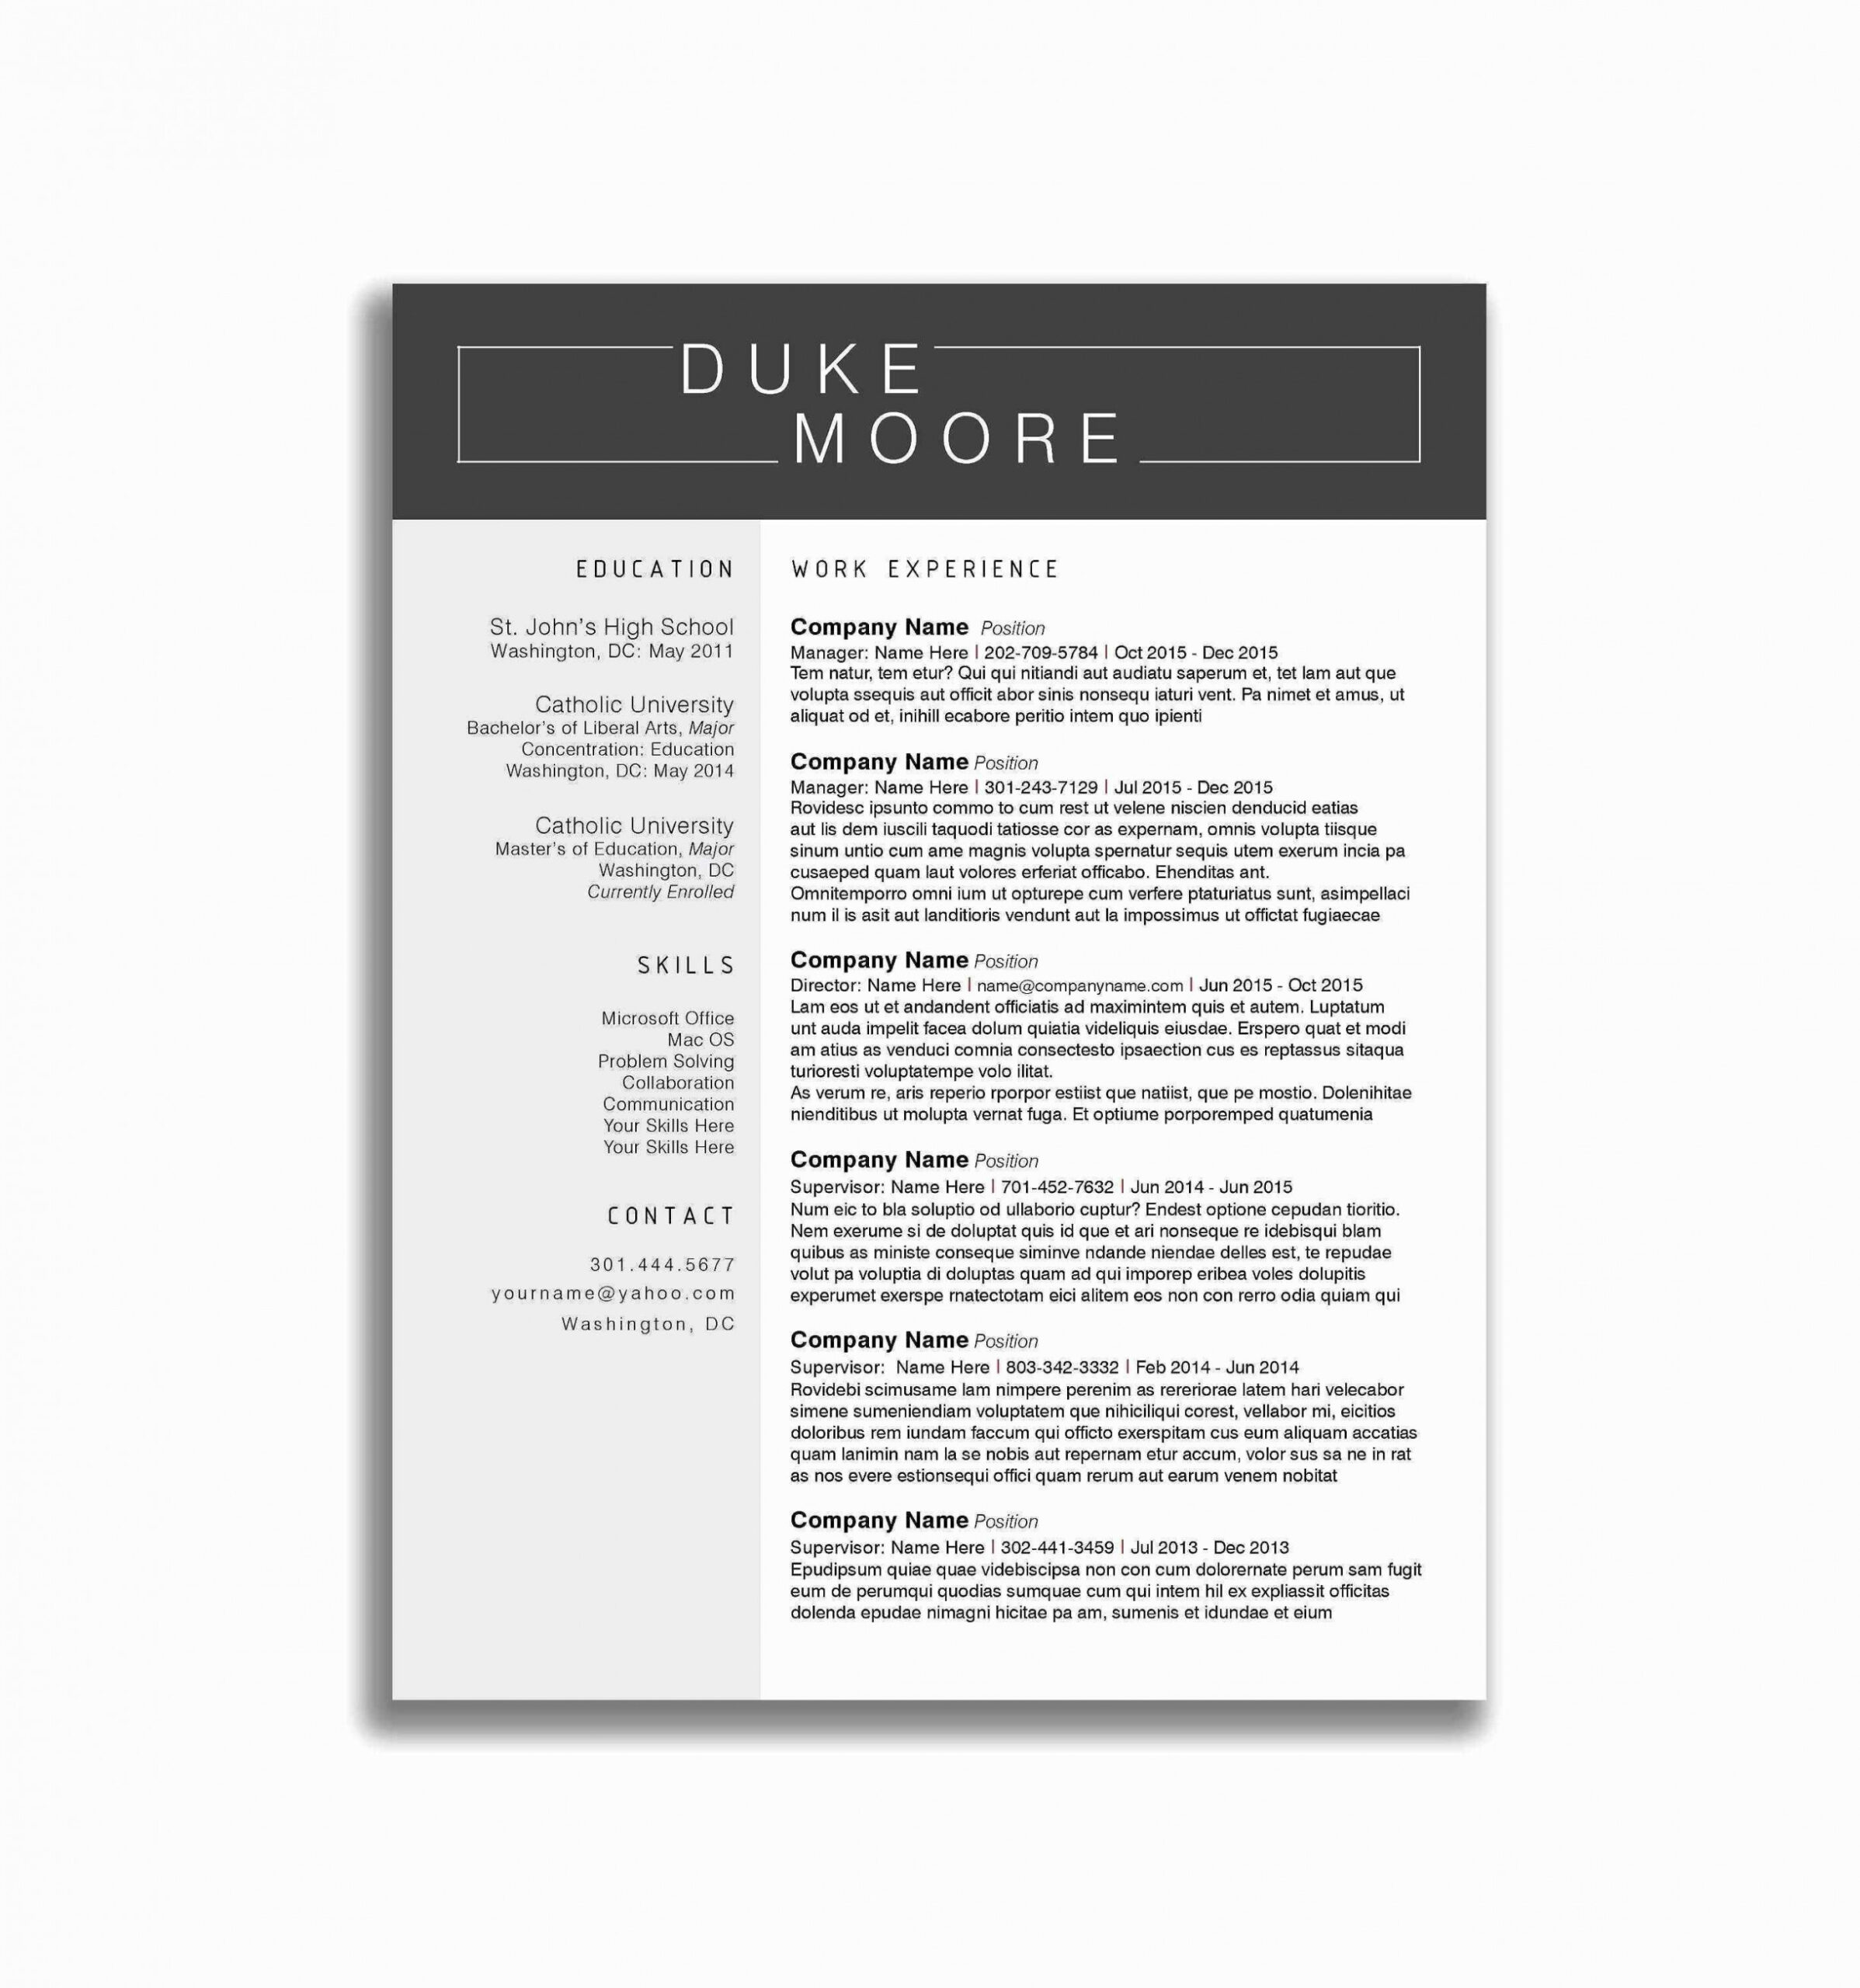 resume templates google docs template builder example for free drivee best cv drive tips Resume Resume Templates For Google Docs Free